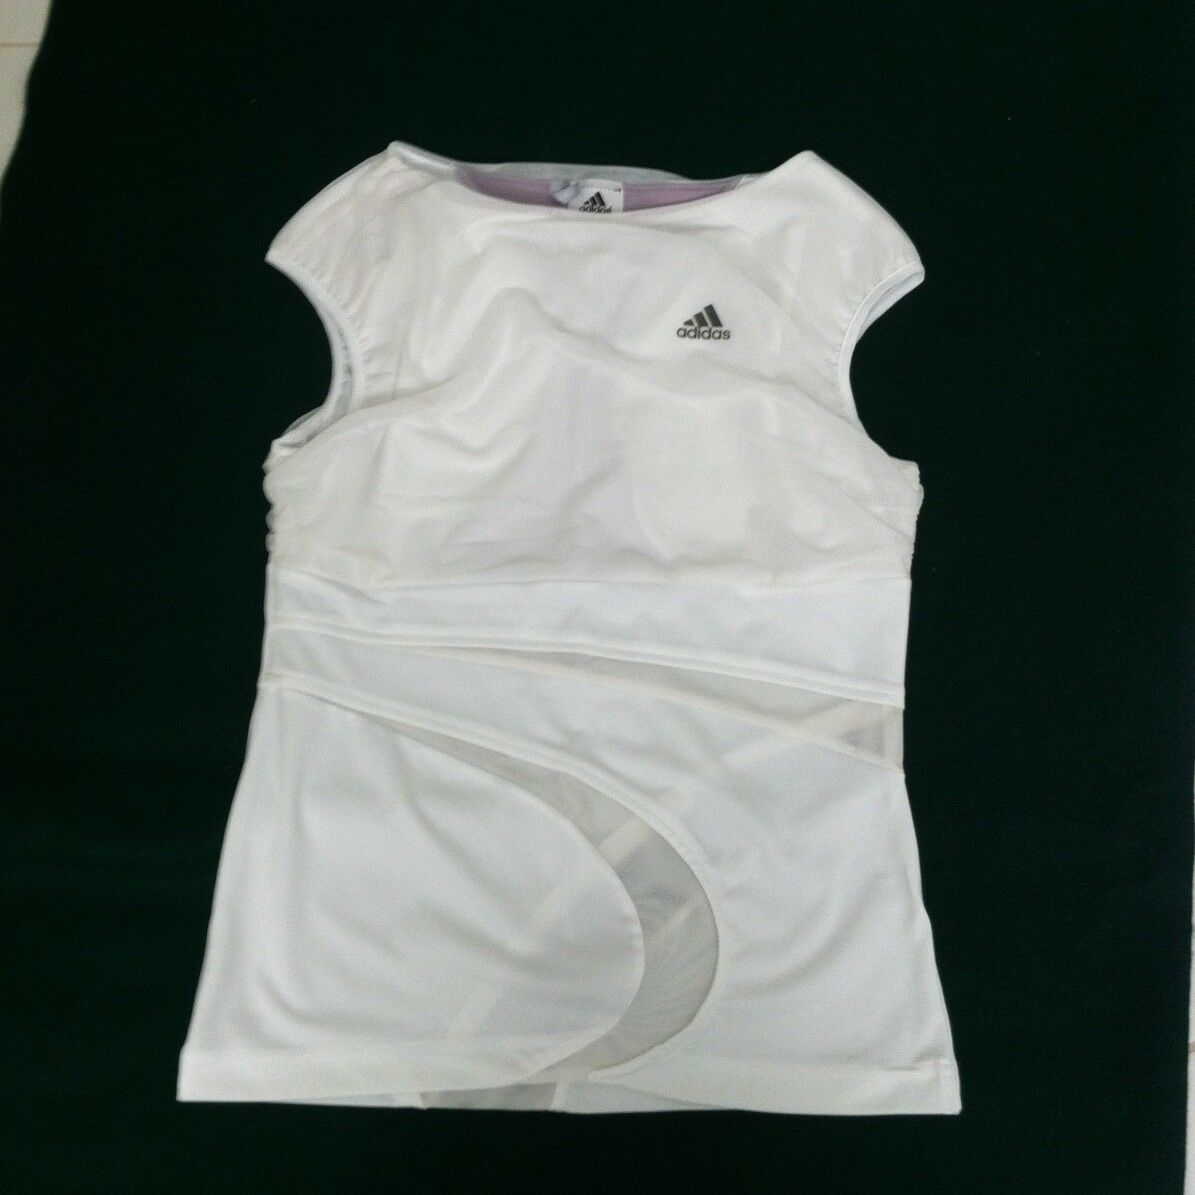 NEW w o tag ADIDAS CLIMA365 TENNIS TOP. SIZE  Women's S. color  White.